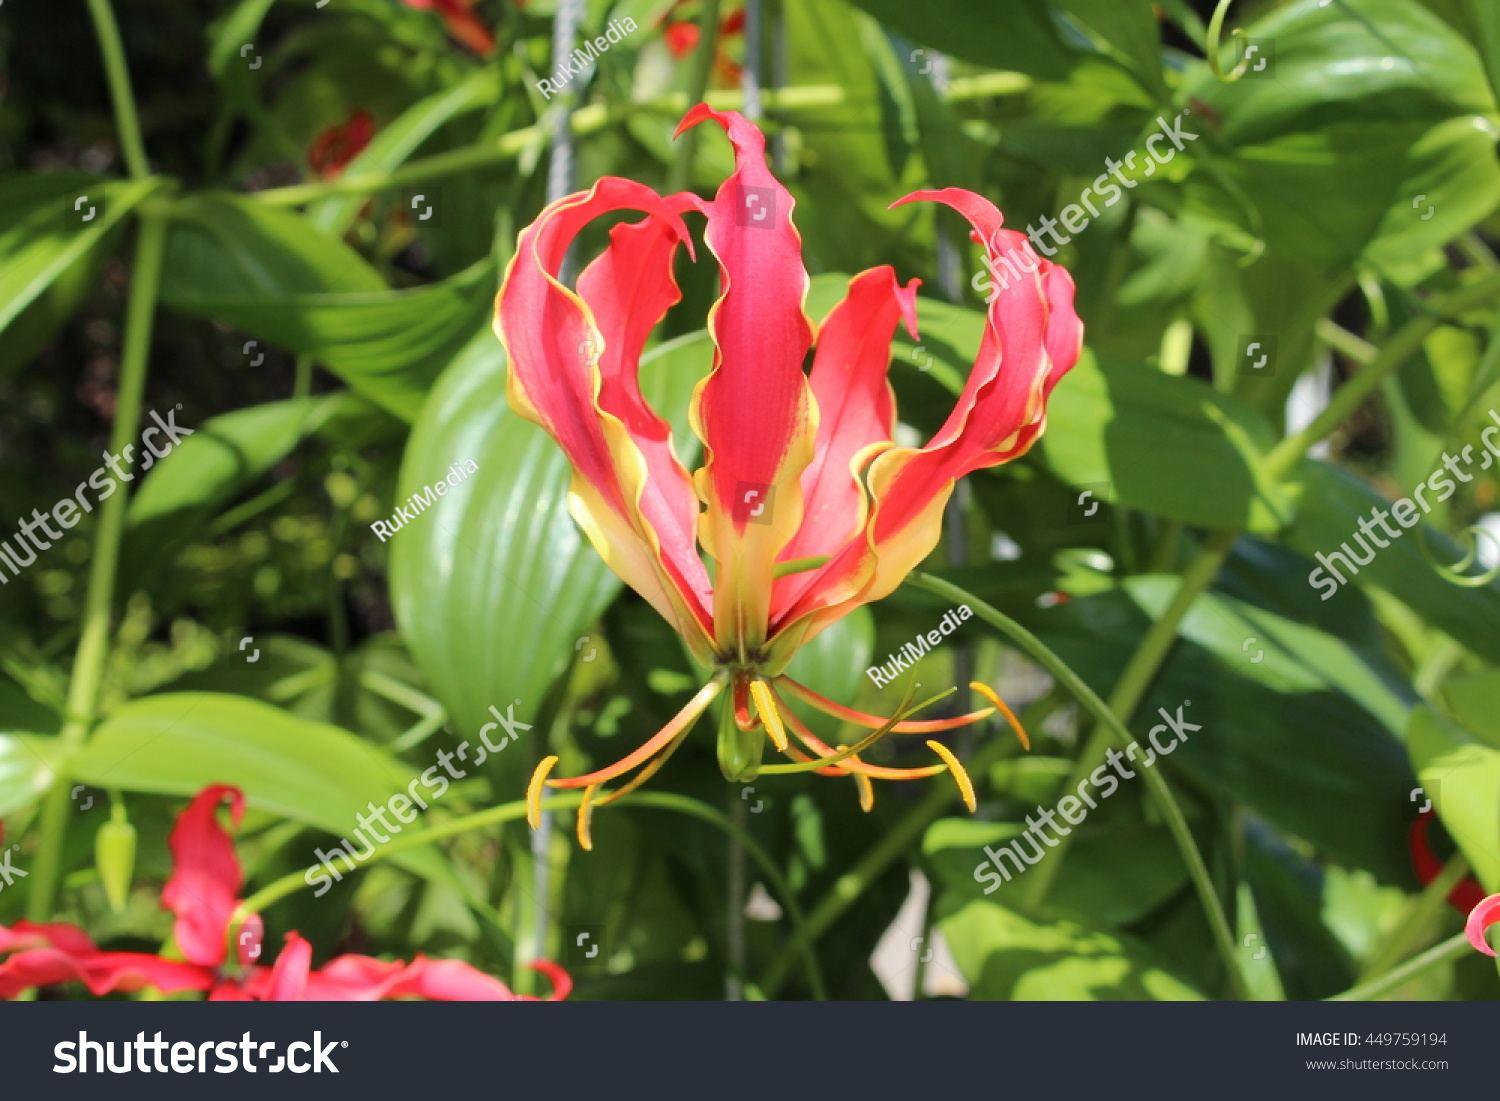 Red yellow flame lily flower or stock photo edit now 449759194 red and yellow flame lily flower or climbing lily creeping lily izmirmasajfo